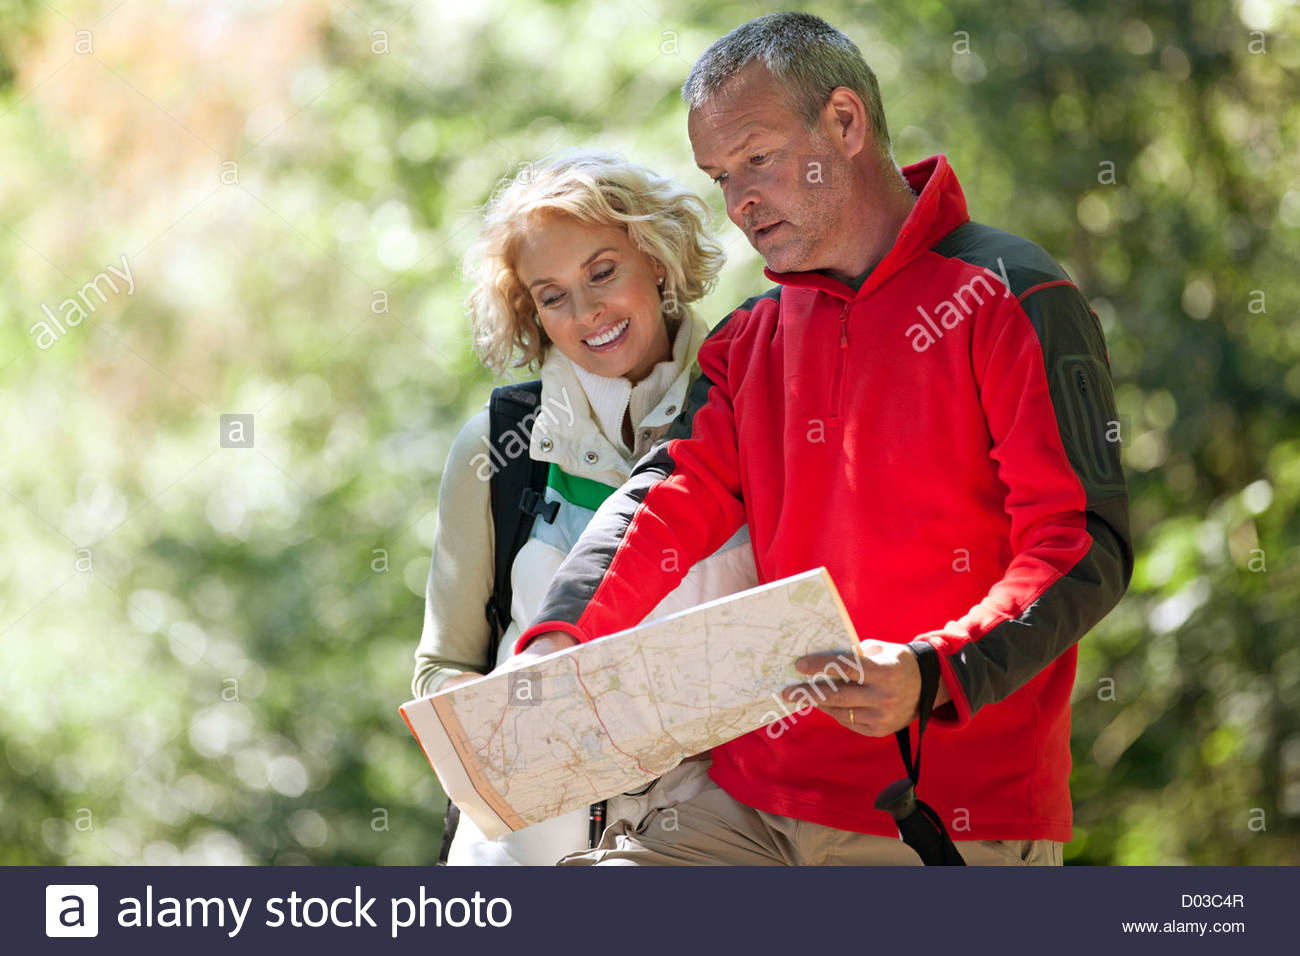 A couple walking in the countryside, looking at a map - Stock Image